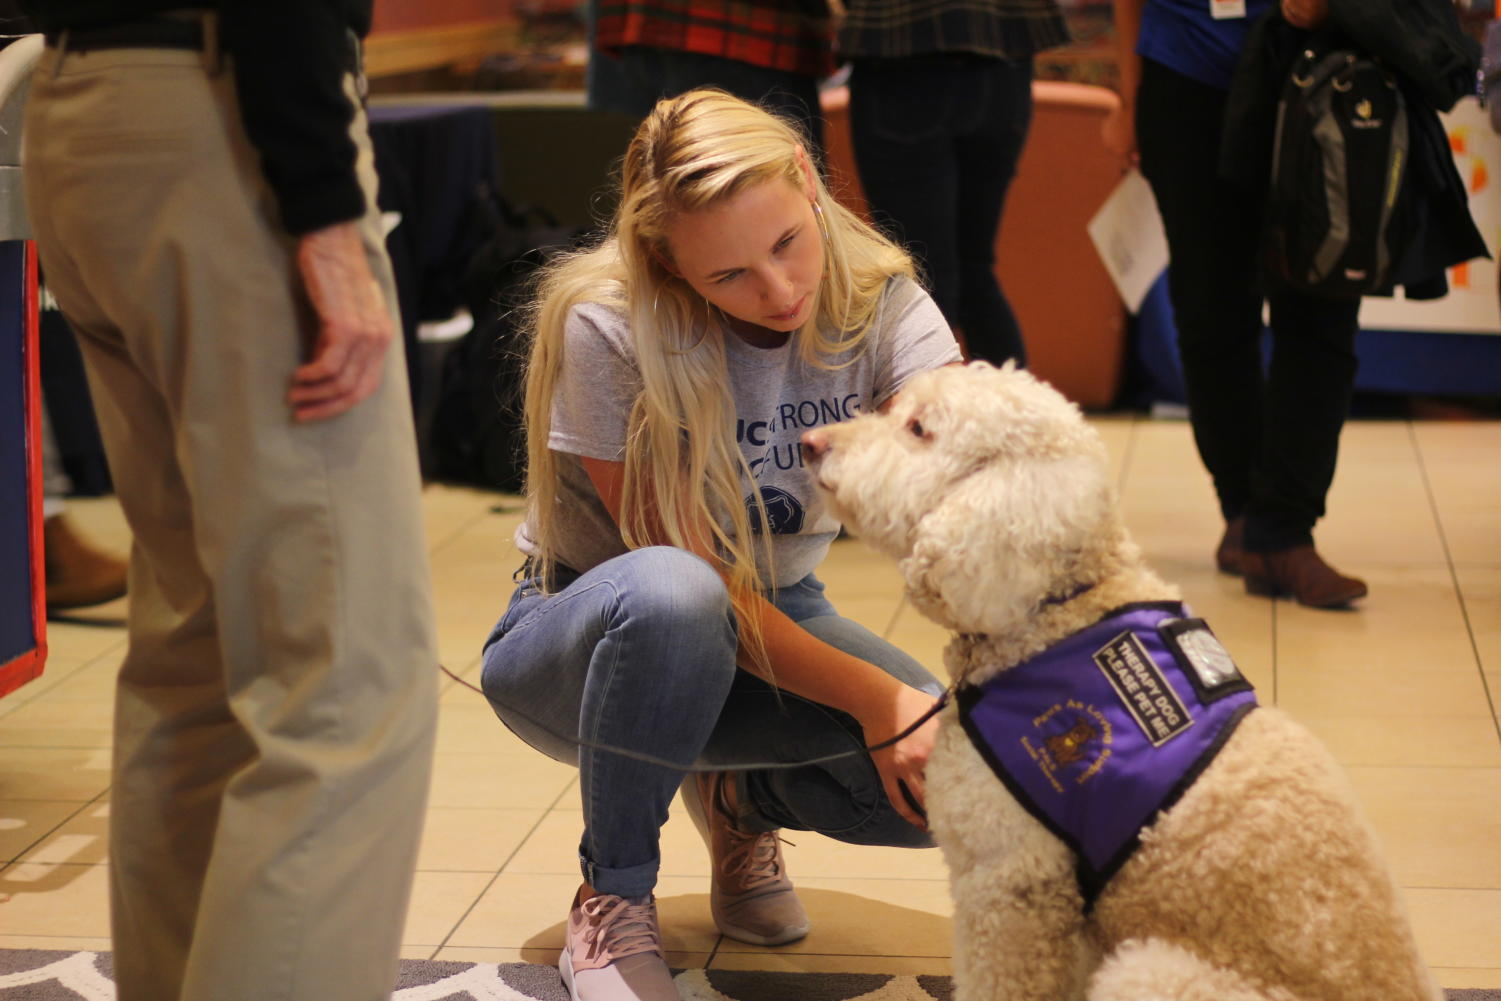 Student utilizes therapy dogs provided by Paws As Loving Support during the SRJC Strong event.